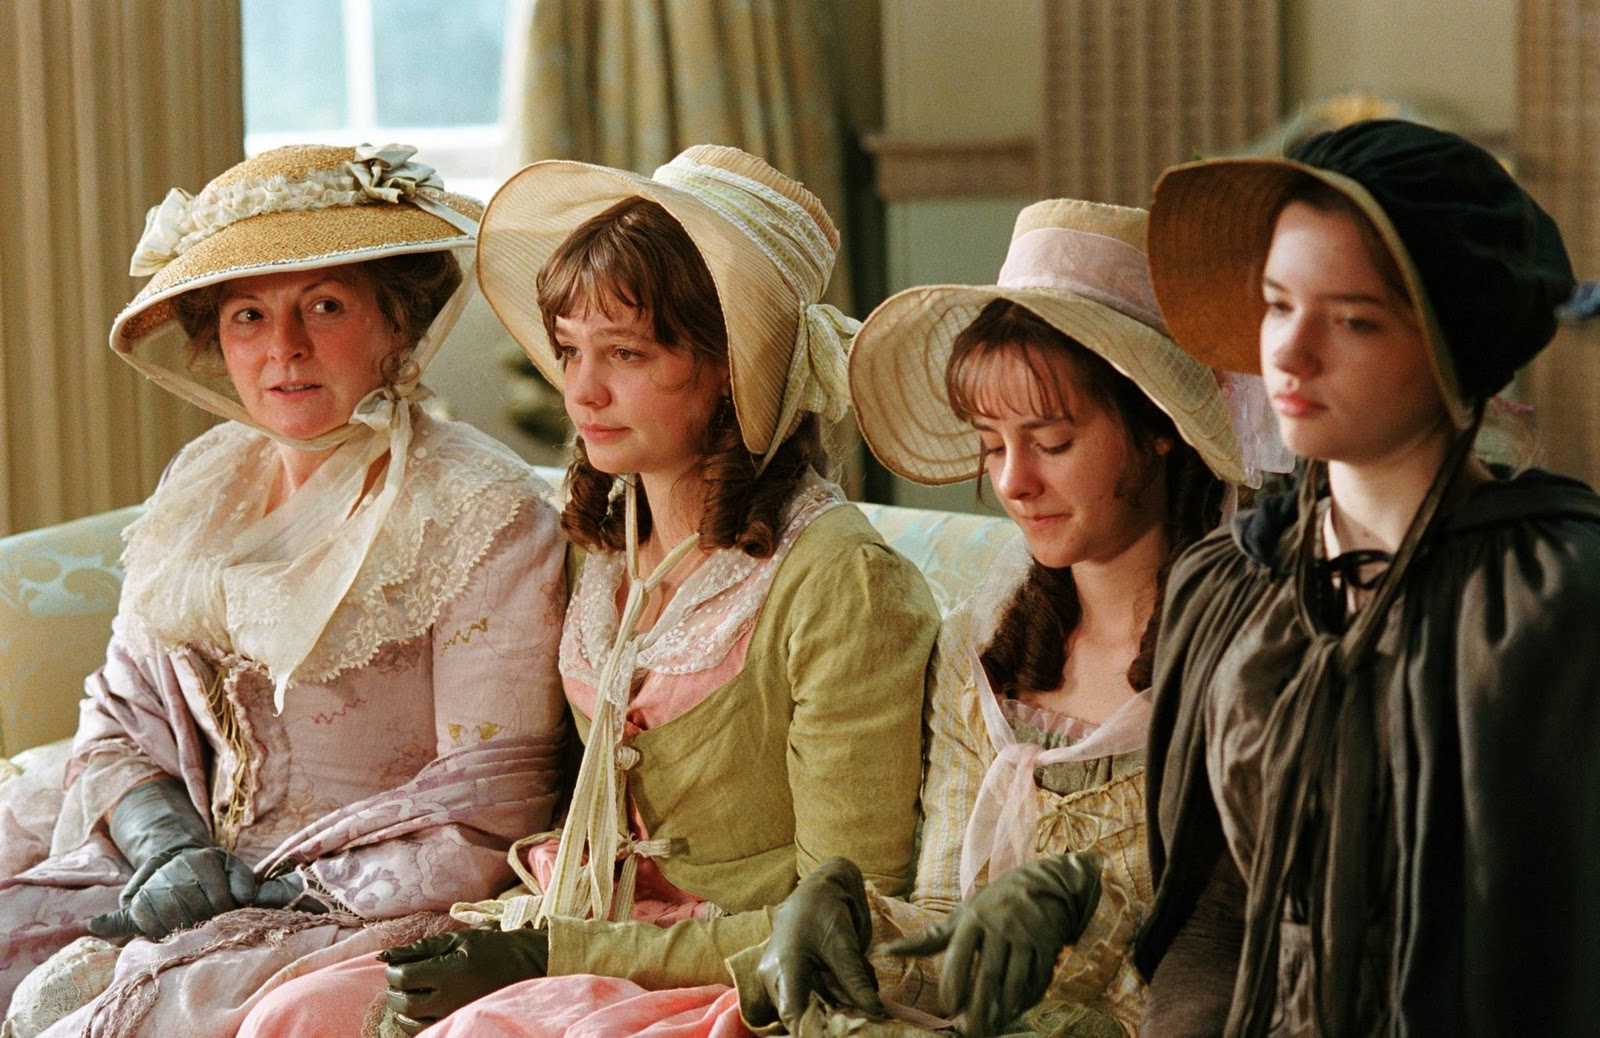 pride and prejudice by lydia bennet essay Pride and prejudice was similar to the relationship between lydia and wickham mr bennet married a woman that he found sexually the essay you want get your.